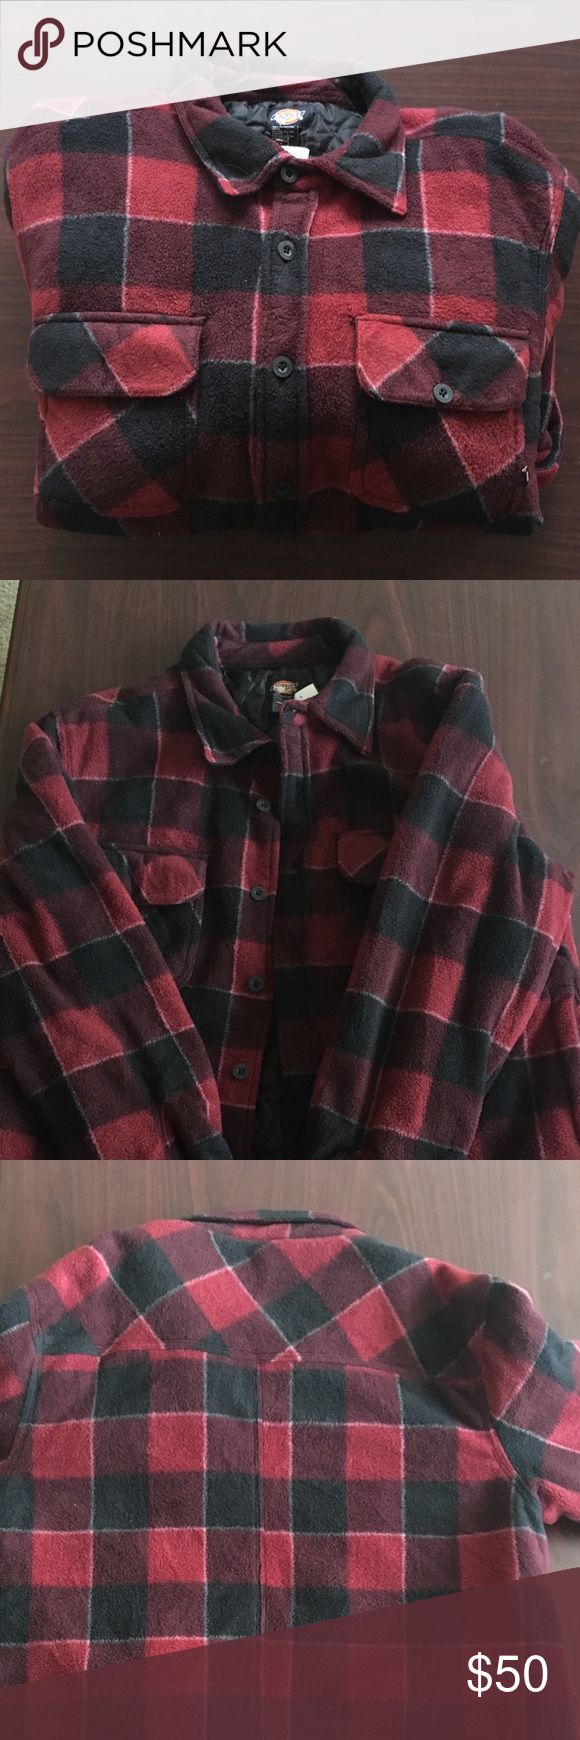 Red plaid dickies coat A red and plaid dickies coat.  Super worn. Gently worn.  Supreme condition.  No stains no damages no holes.  Very warm  Willing to negotiate offer Dickies Jackets & Coats Pea Coats